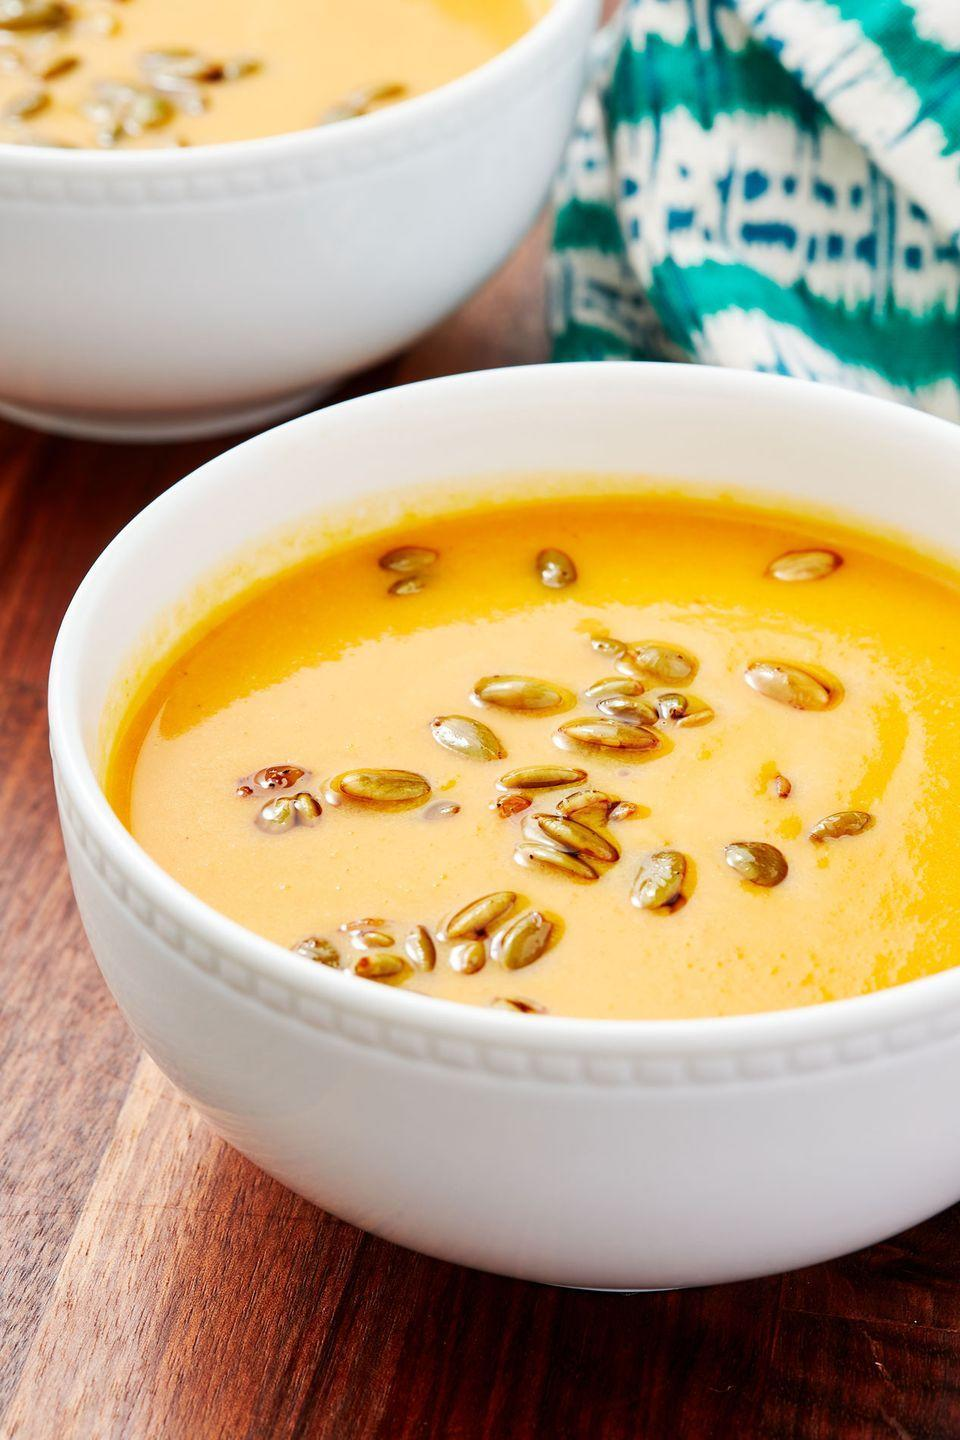 """<p>No need to restrict this to Autumn only—any rainy day calls for a comforting bowl of soup like this richly flavored, silky squash soup. The toasted pepitas are an amazing garnish! </p><p>Get the recipe from <a href=""""https://www.delish.com/cooking/recipe-ideas/a28835116/panera-autumn-squash-soup-recipe/"""" rel=""""nofollow noopener"""" target=""""_blank"""" data-ylk=""""slk:Delish"""" class=""""link rapid-noclick-resp"""">Delish</a>.</p>"""